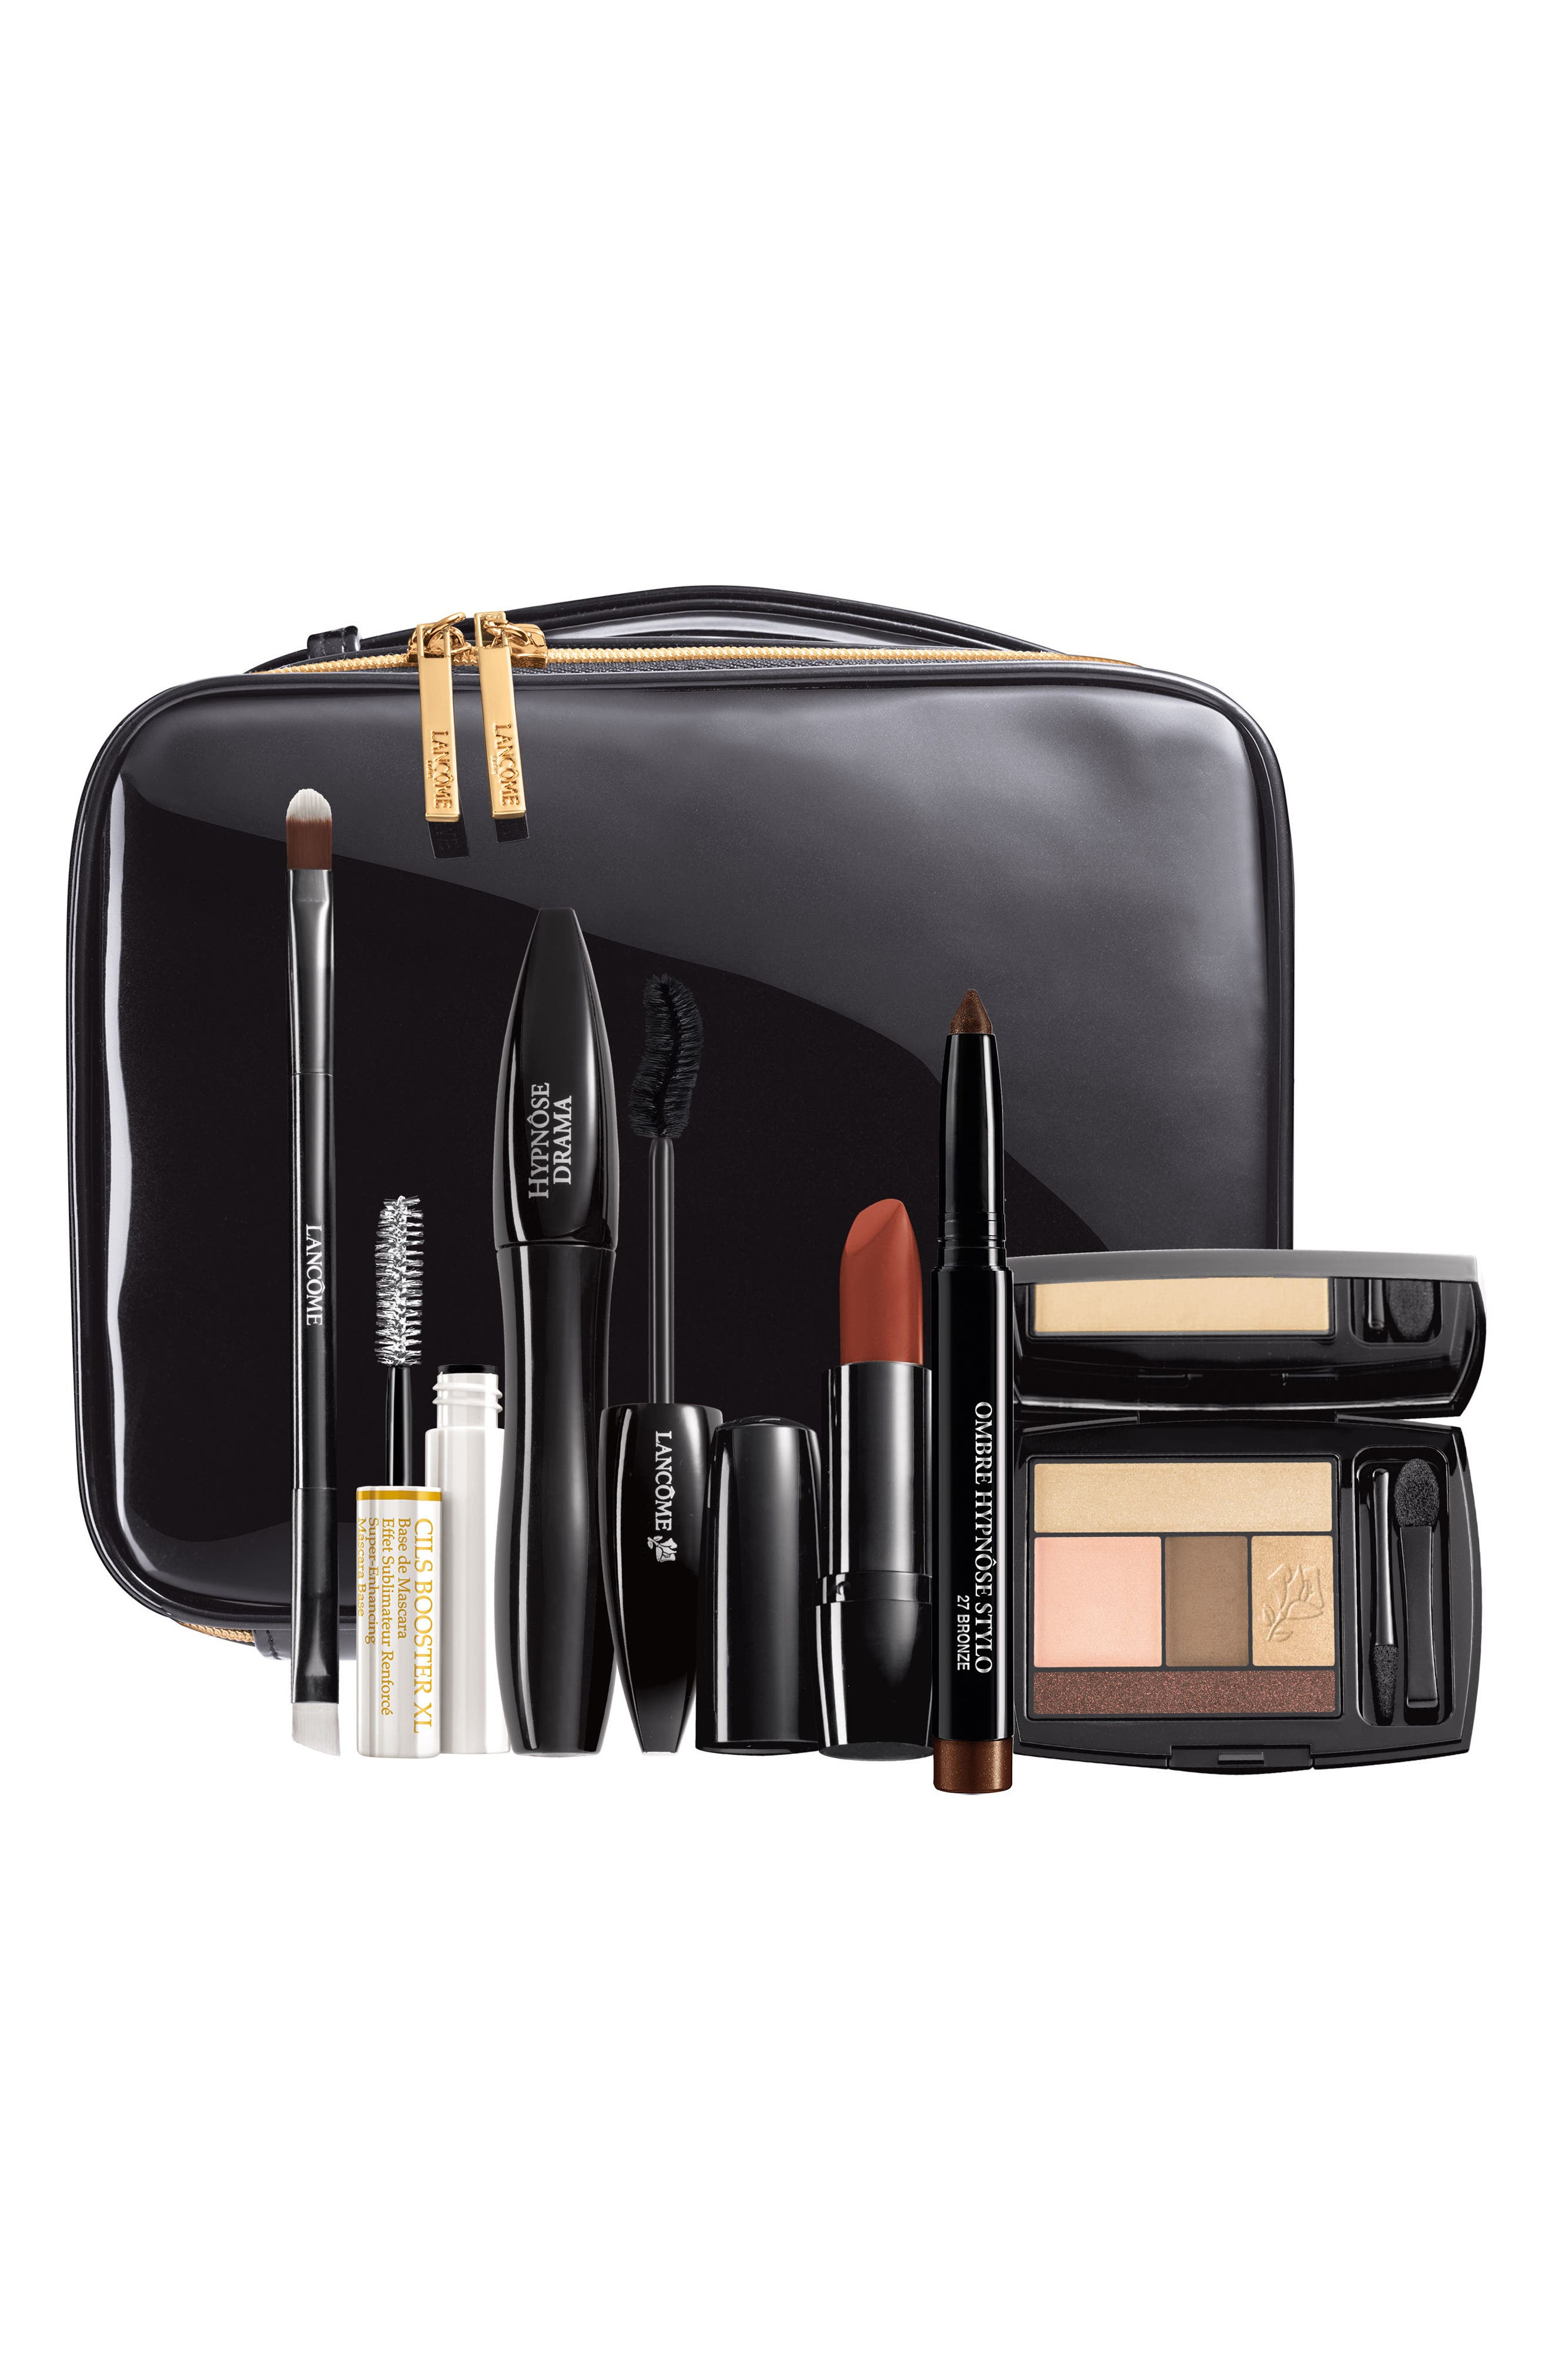 Main Image - Lancôme Holiday Makeup Must Haves Collection (Purchase with any Lancôme Purchase) ($167 Value)